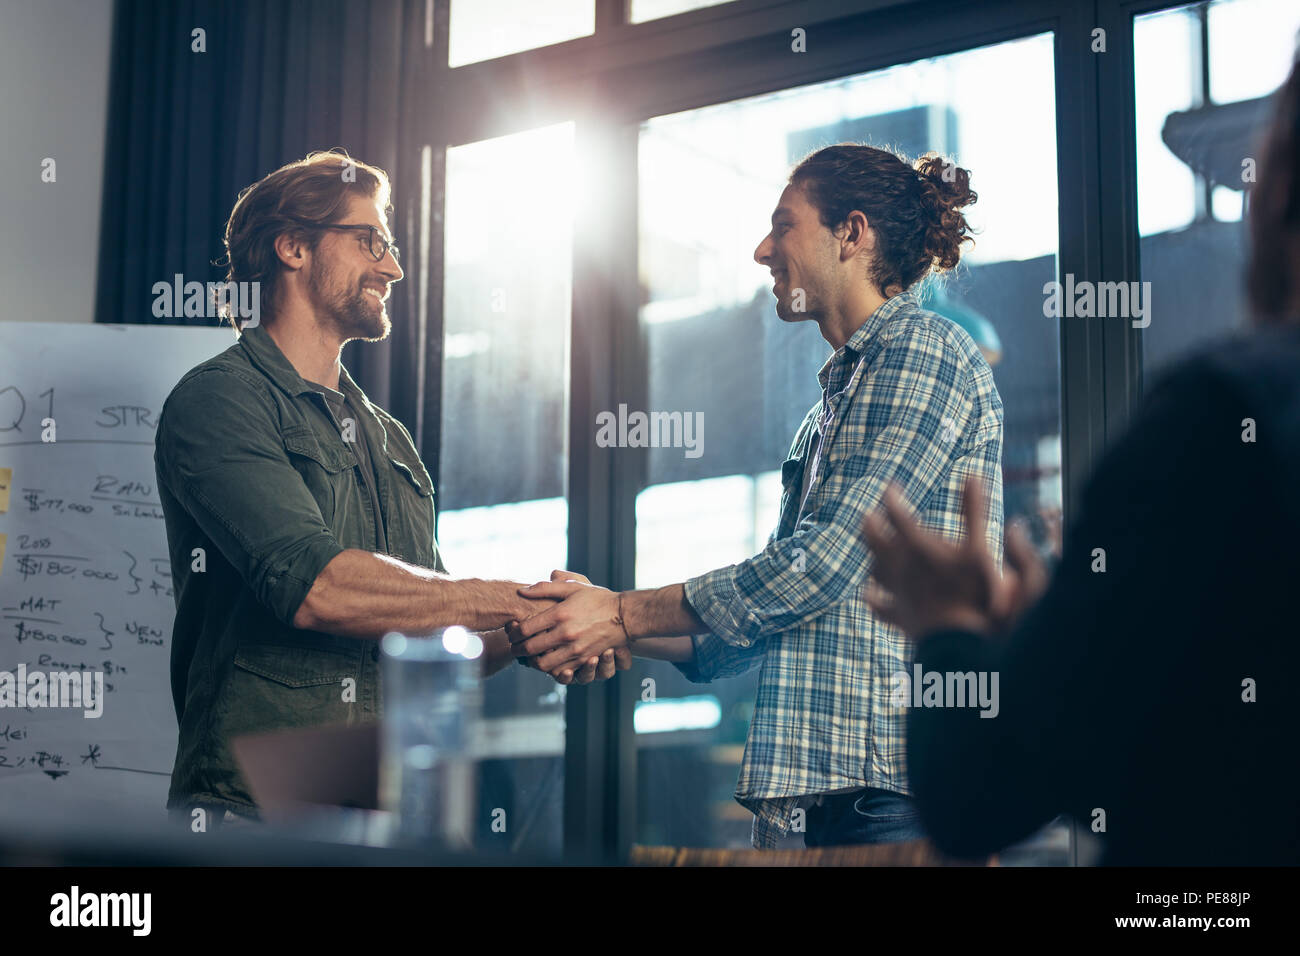 Two business people shaking hands after a successful meeting. Businessman congratulating and appreciating the performance of a colleague in meeting ro - Stock Image